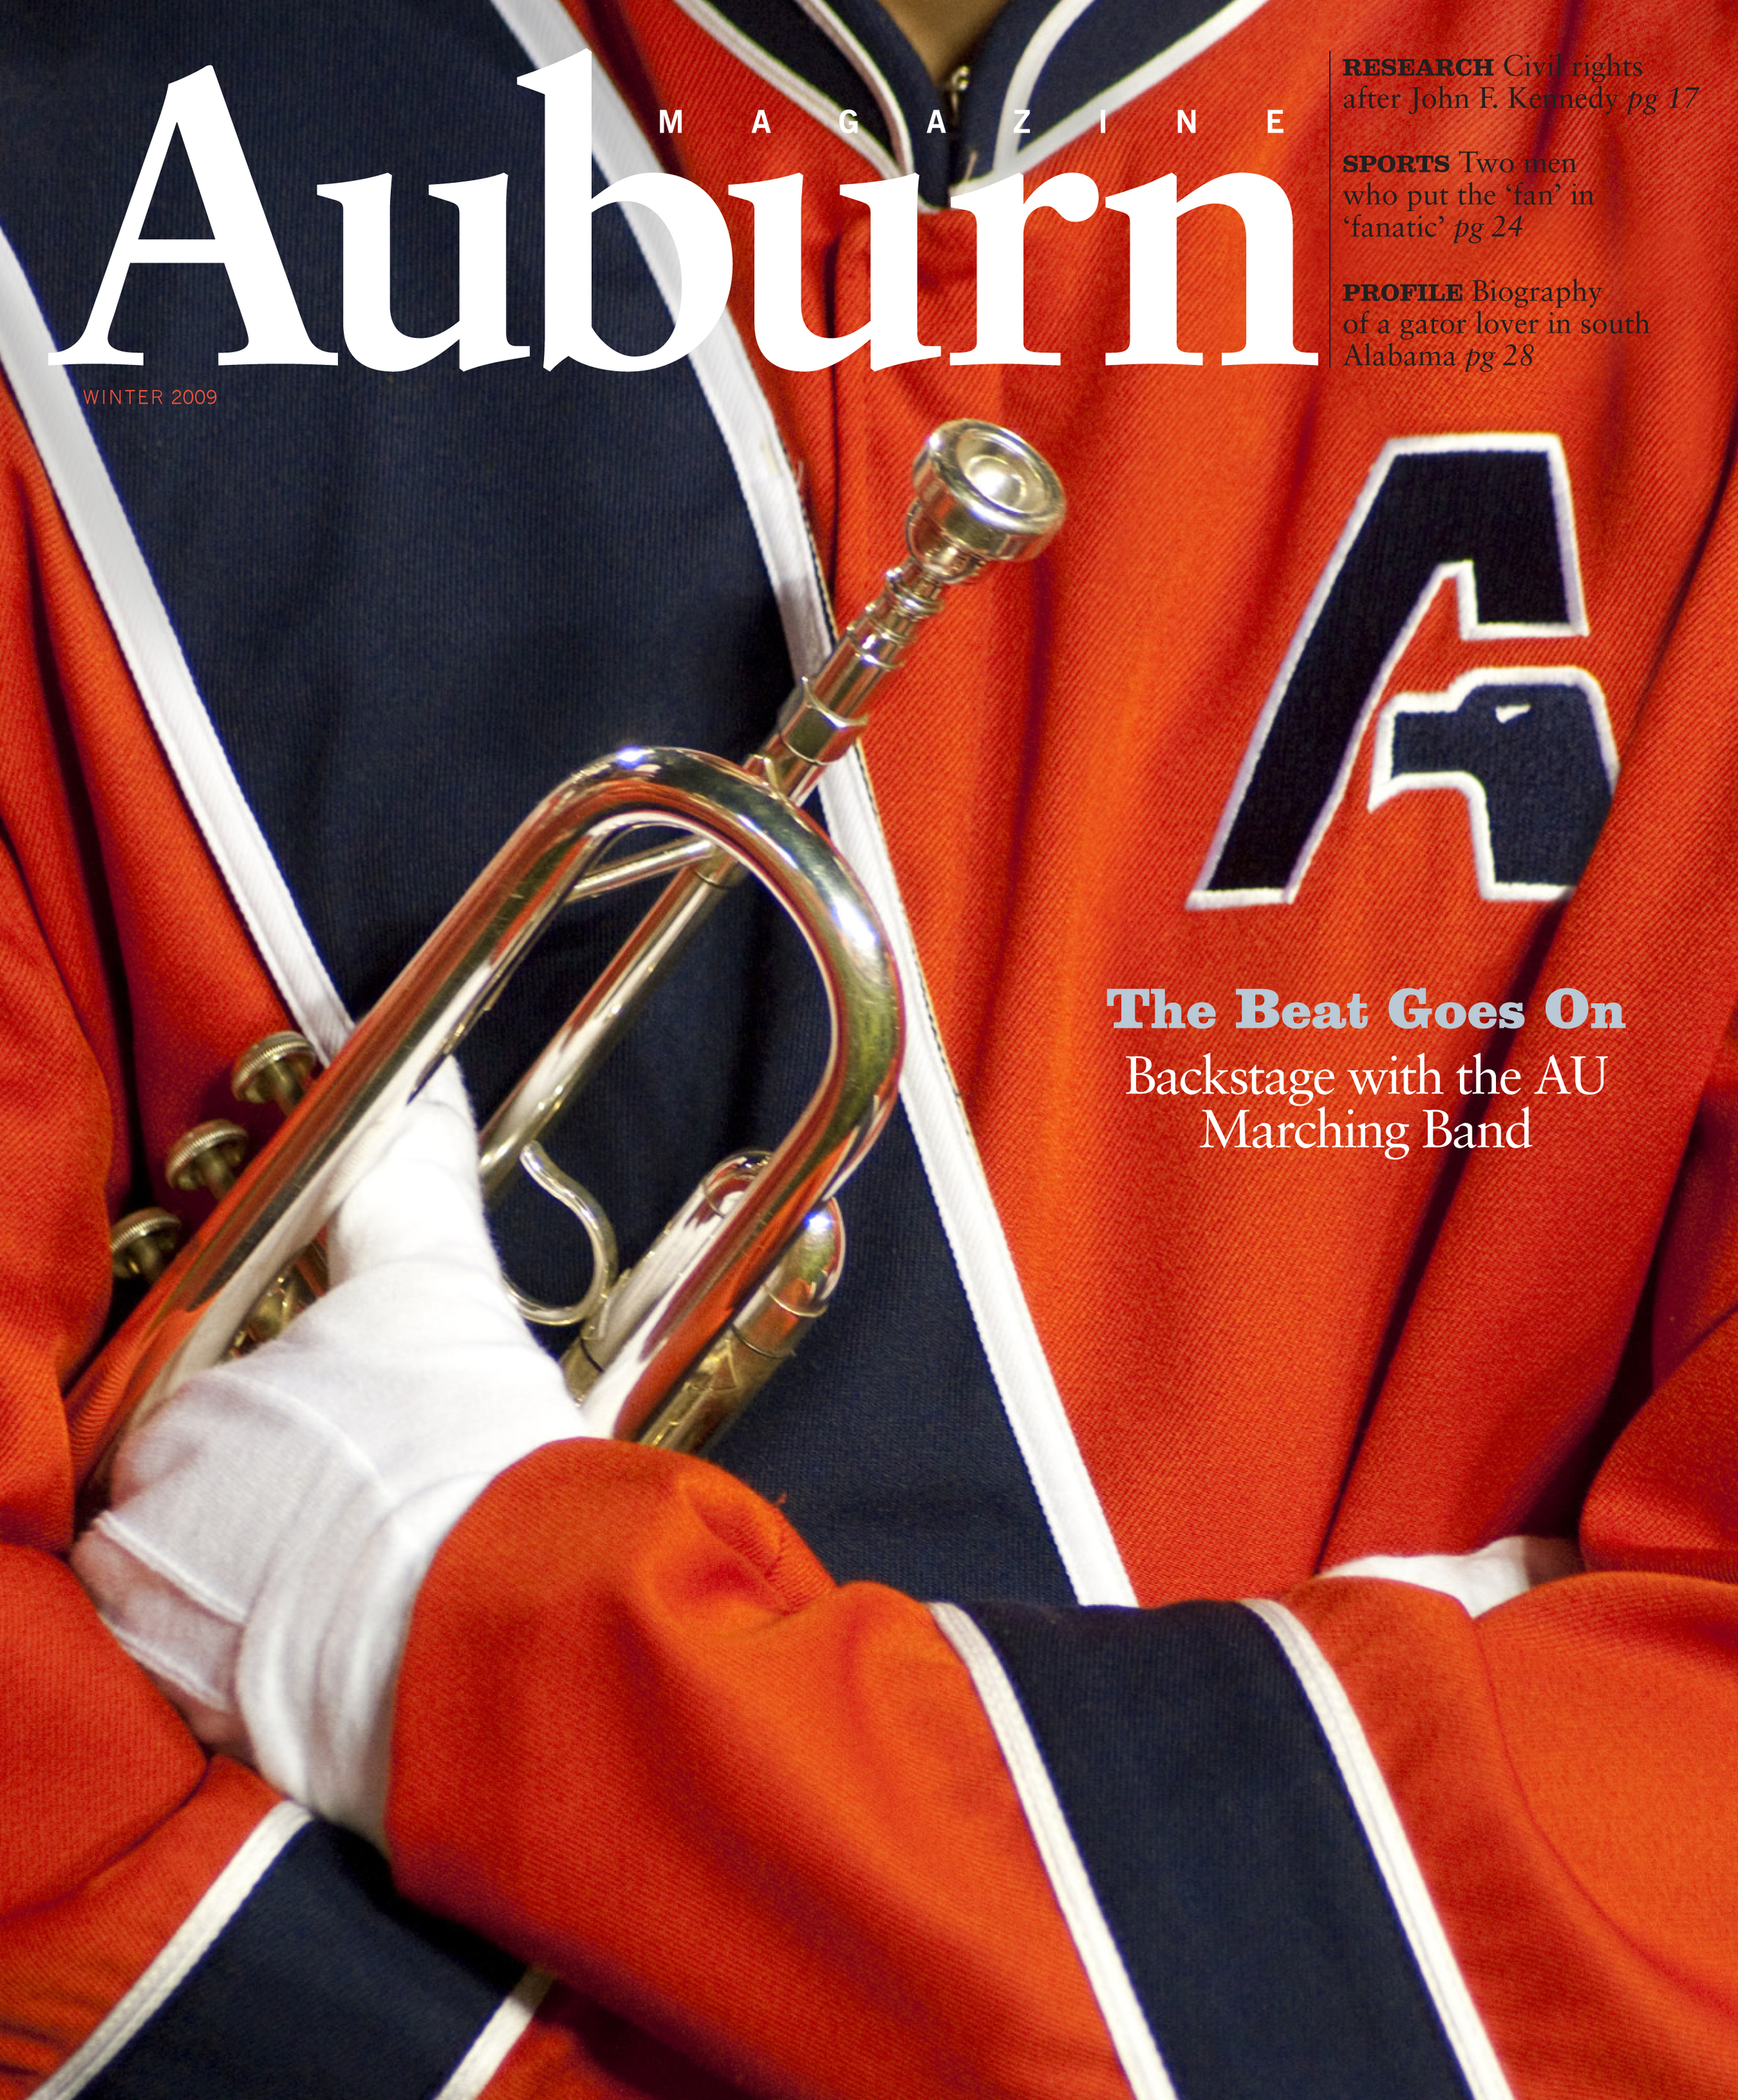 Magazine Cover Nov 09.jpg